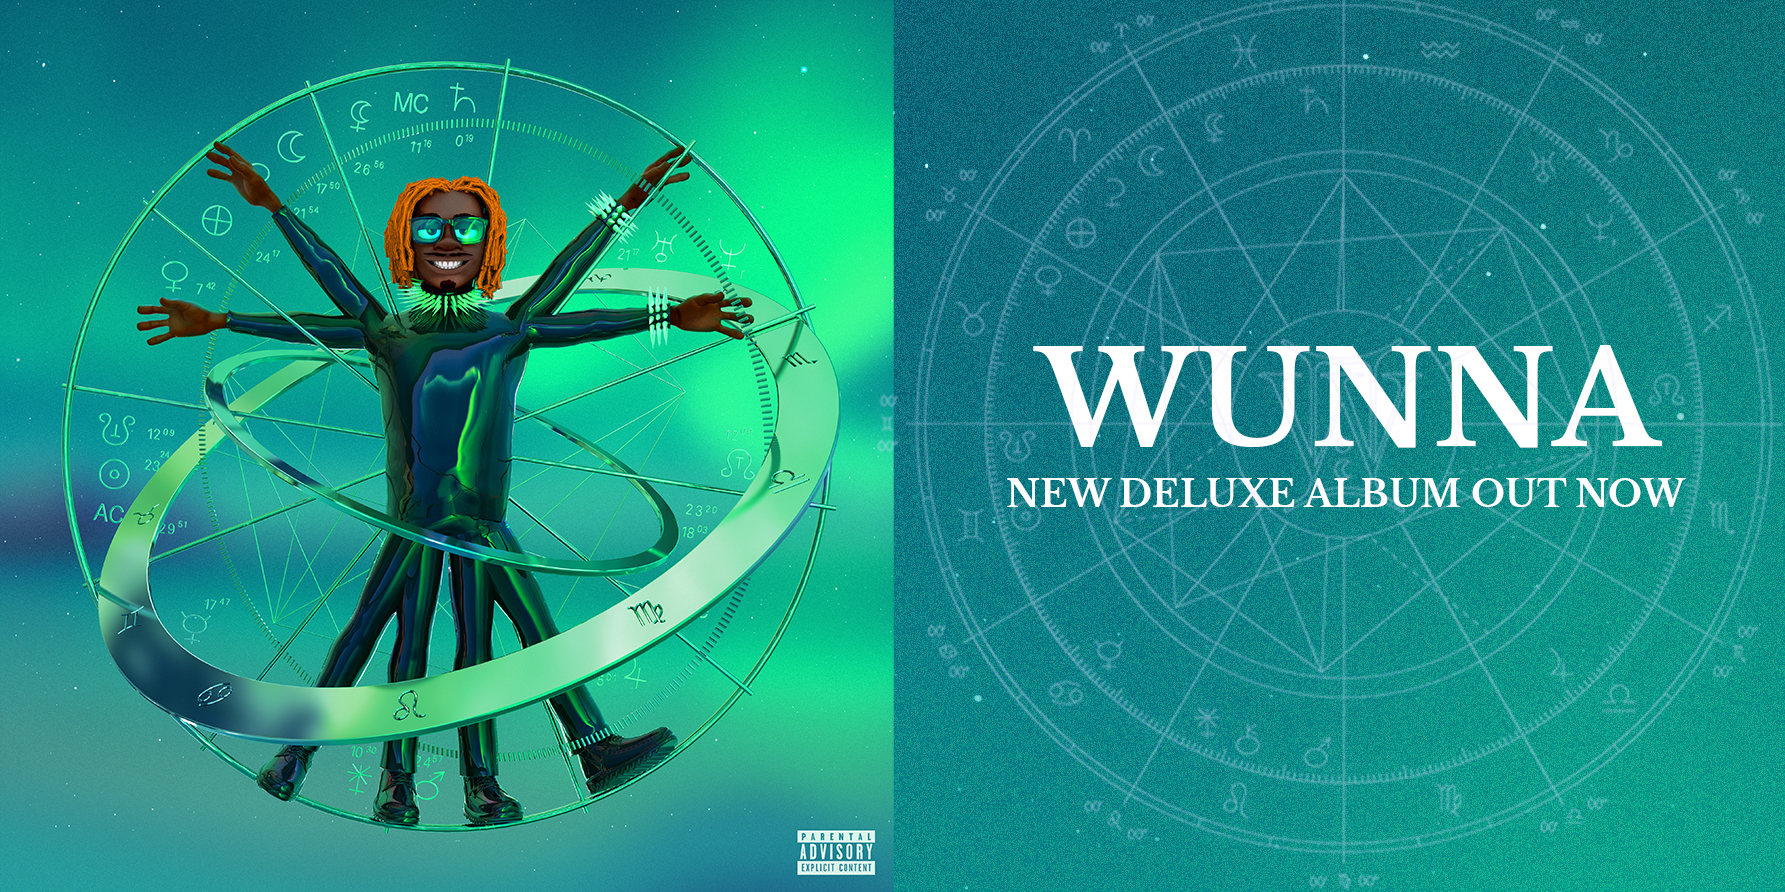 Wunna - The New Album